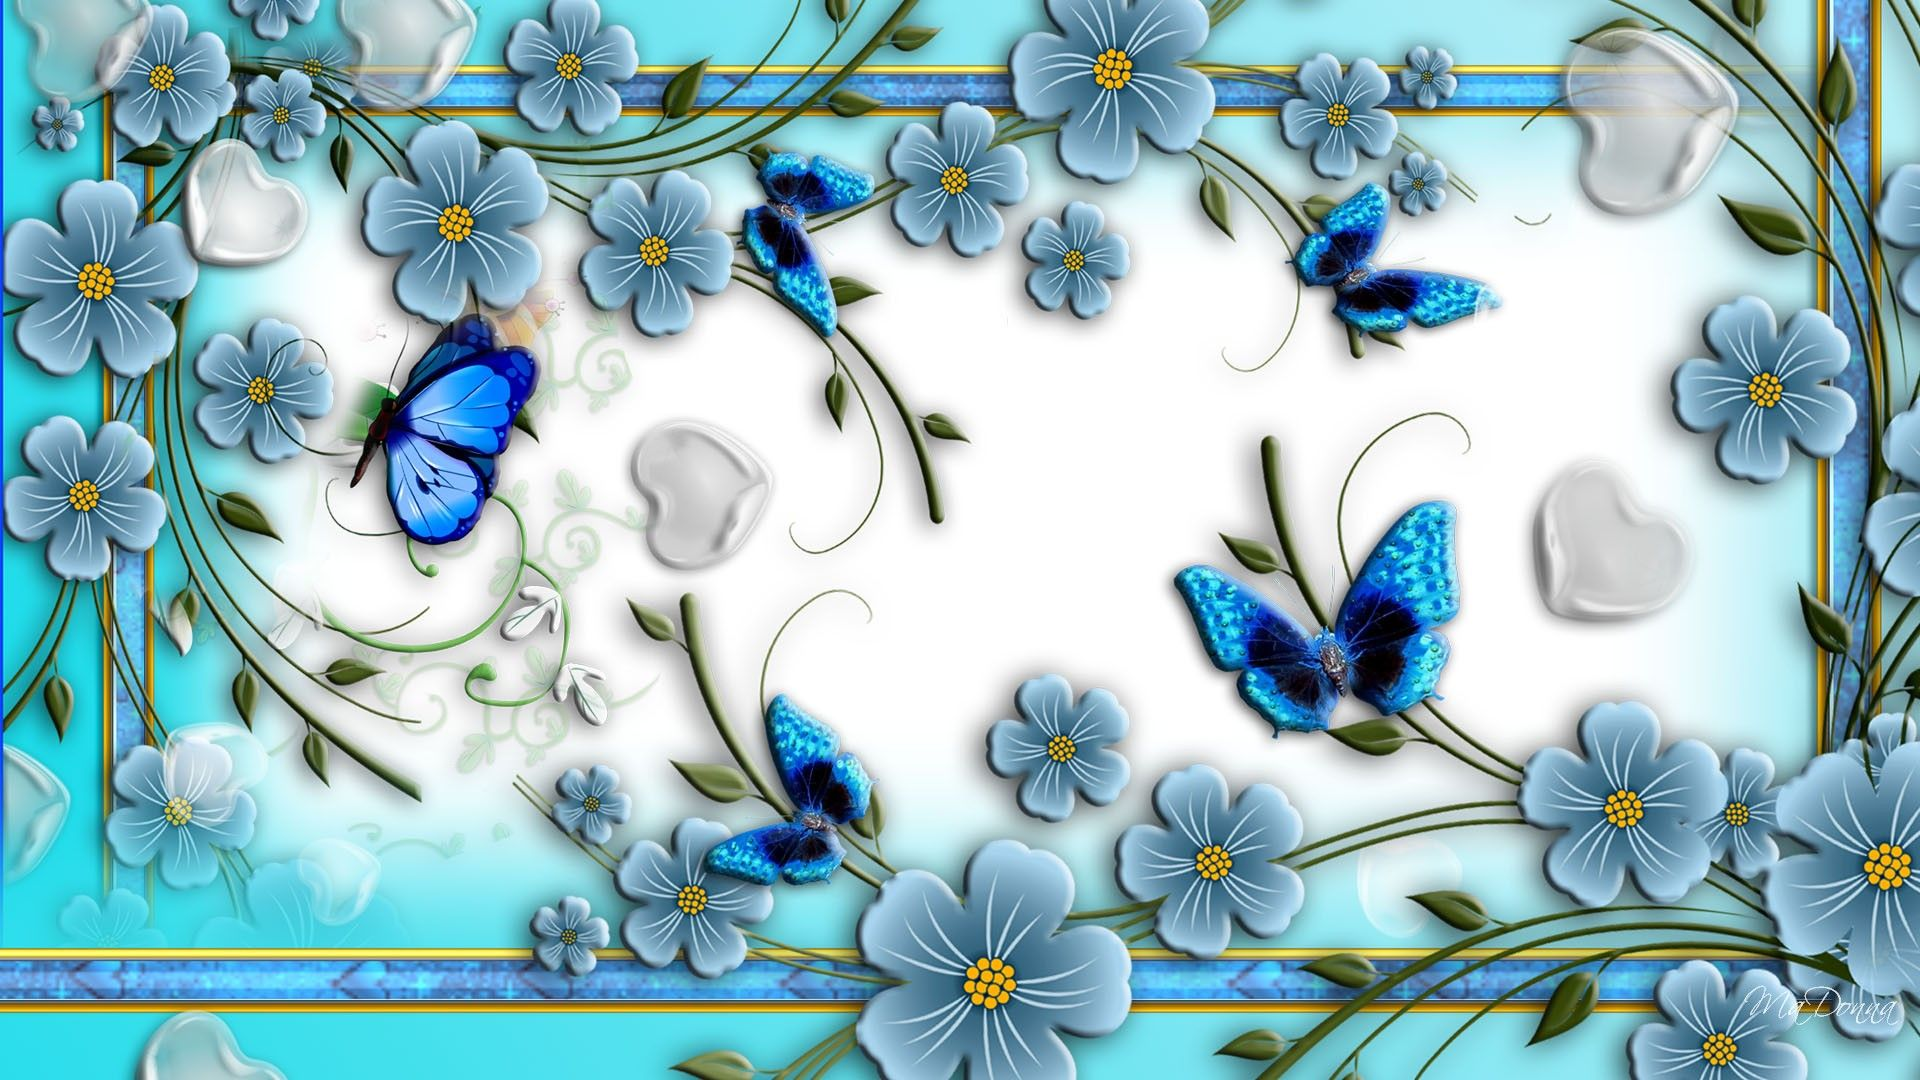 Download Blue Butterflies Abstract Flowers Unique Nature